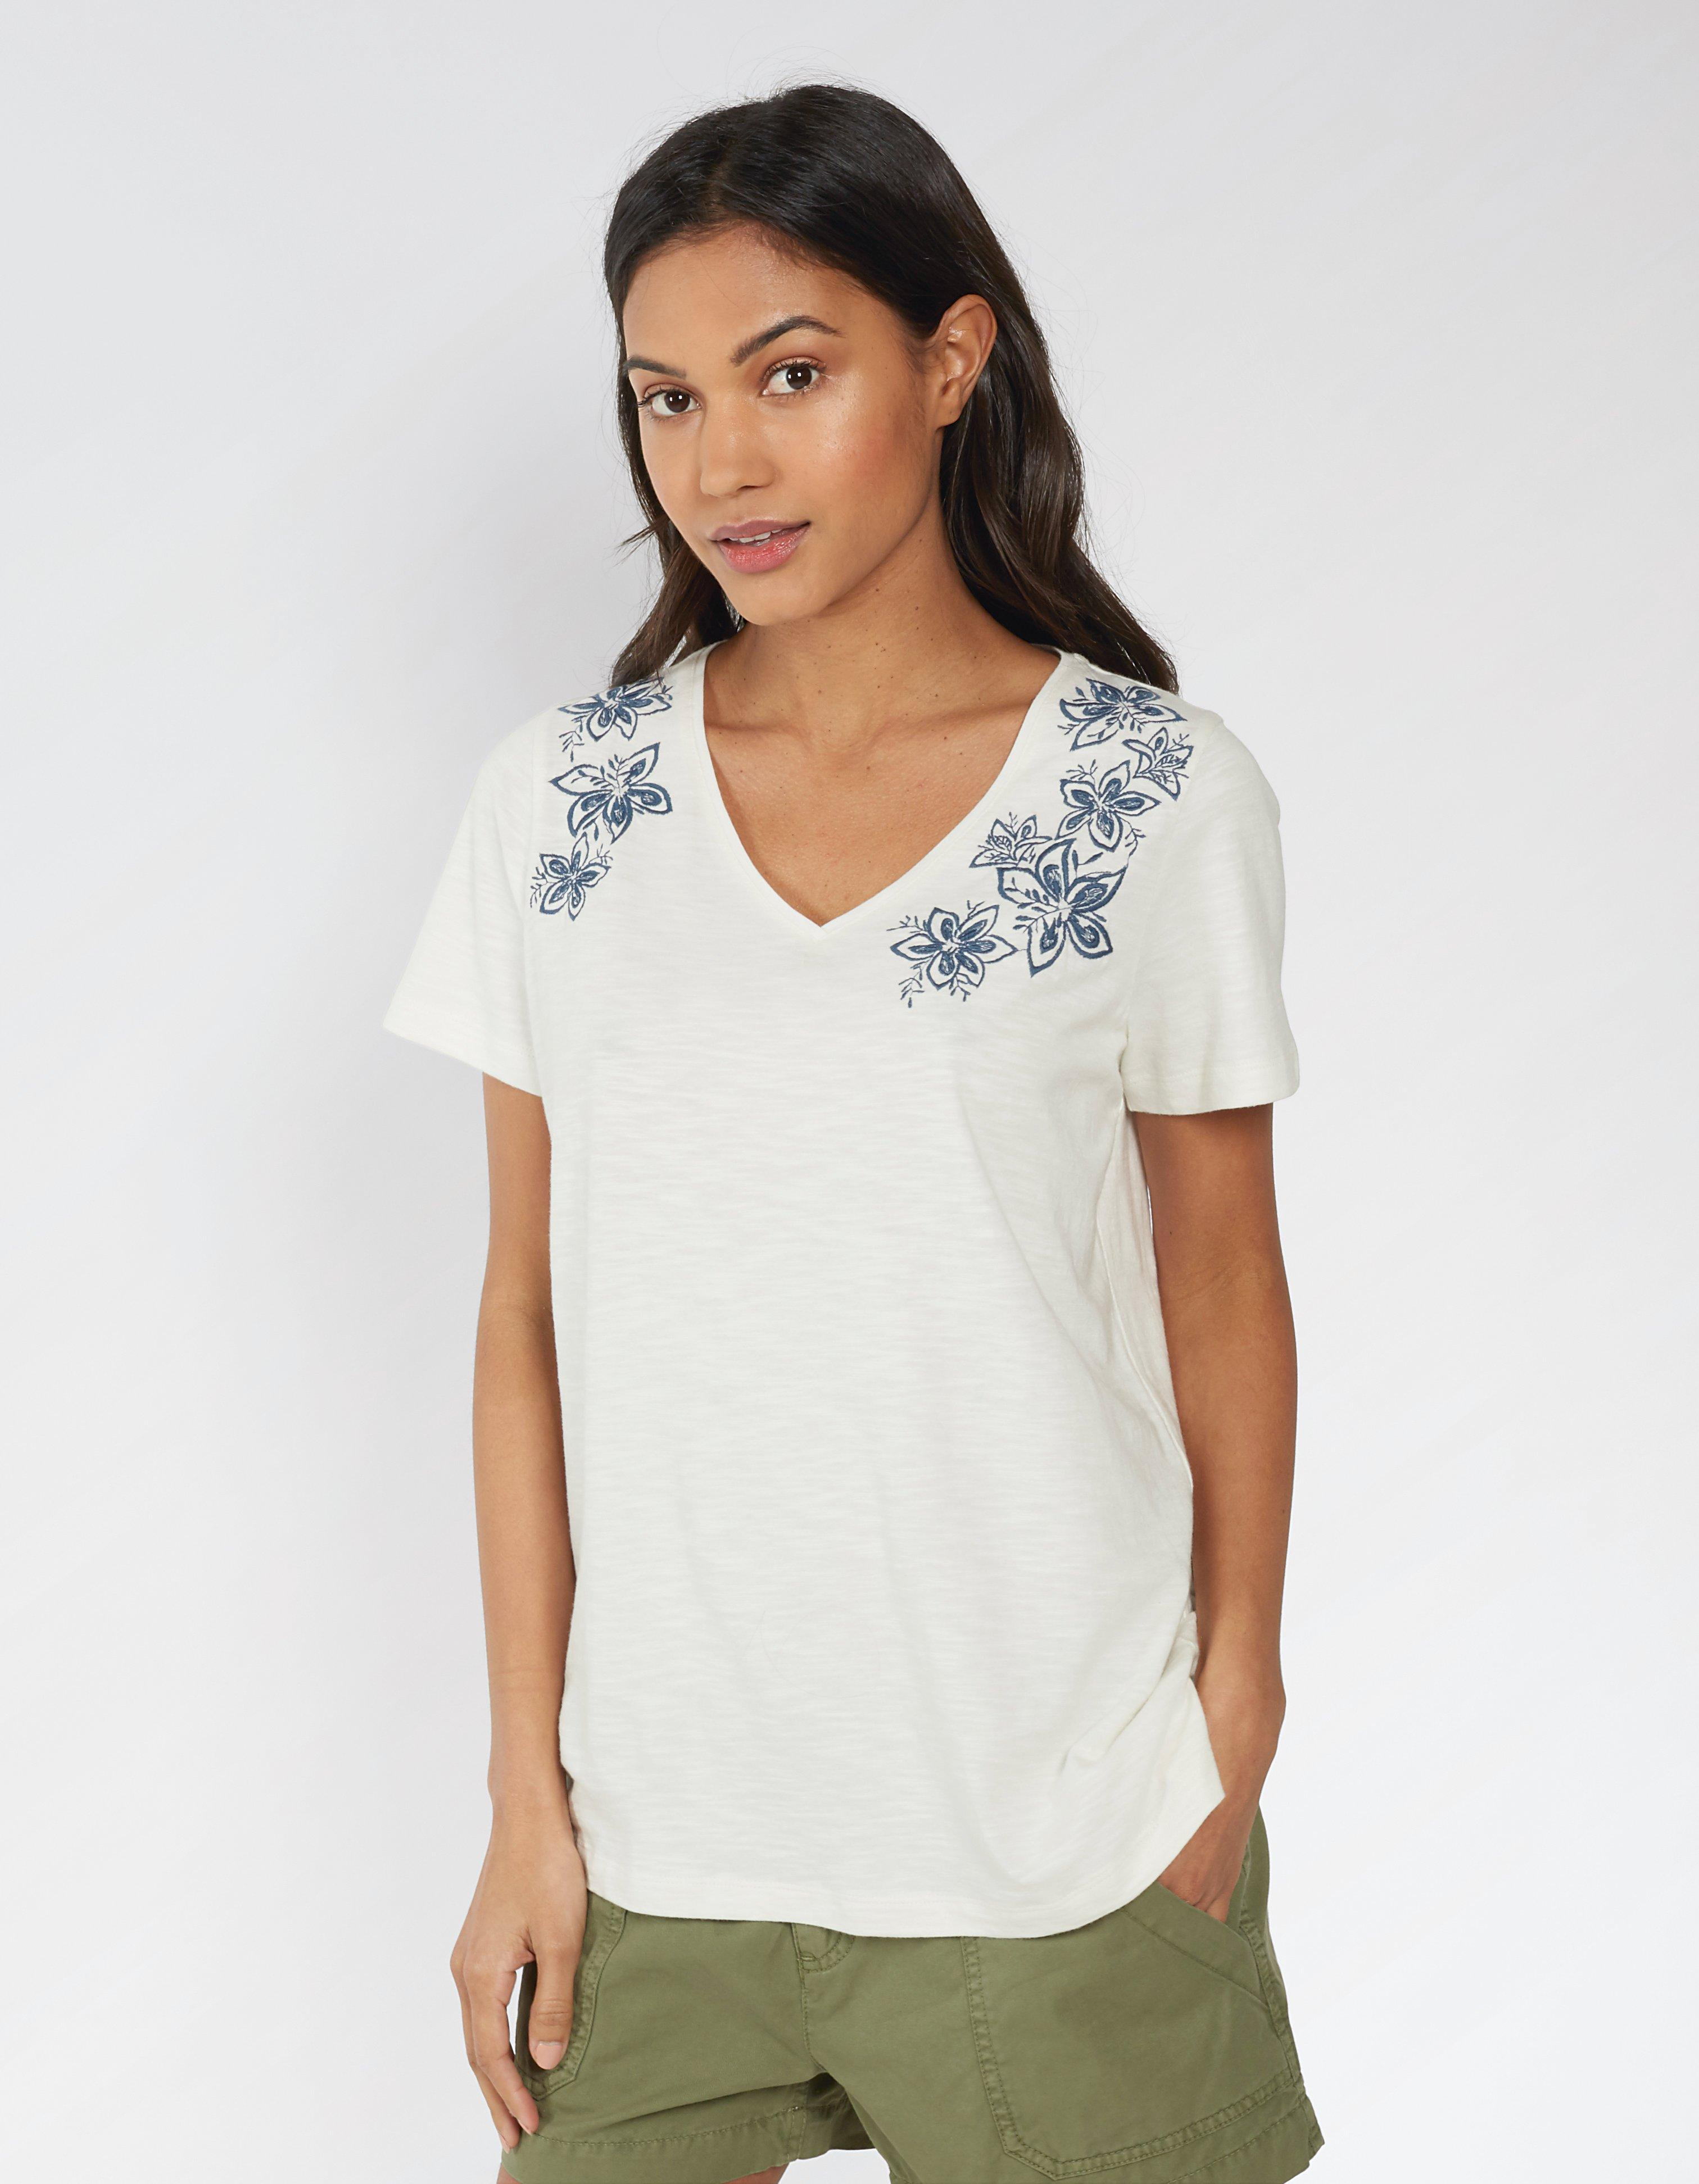 Kaye Star Flower Embroidered T Shirt